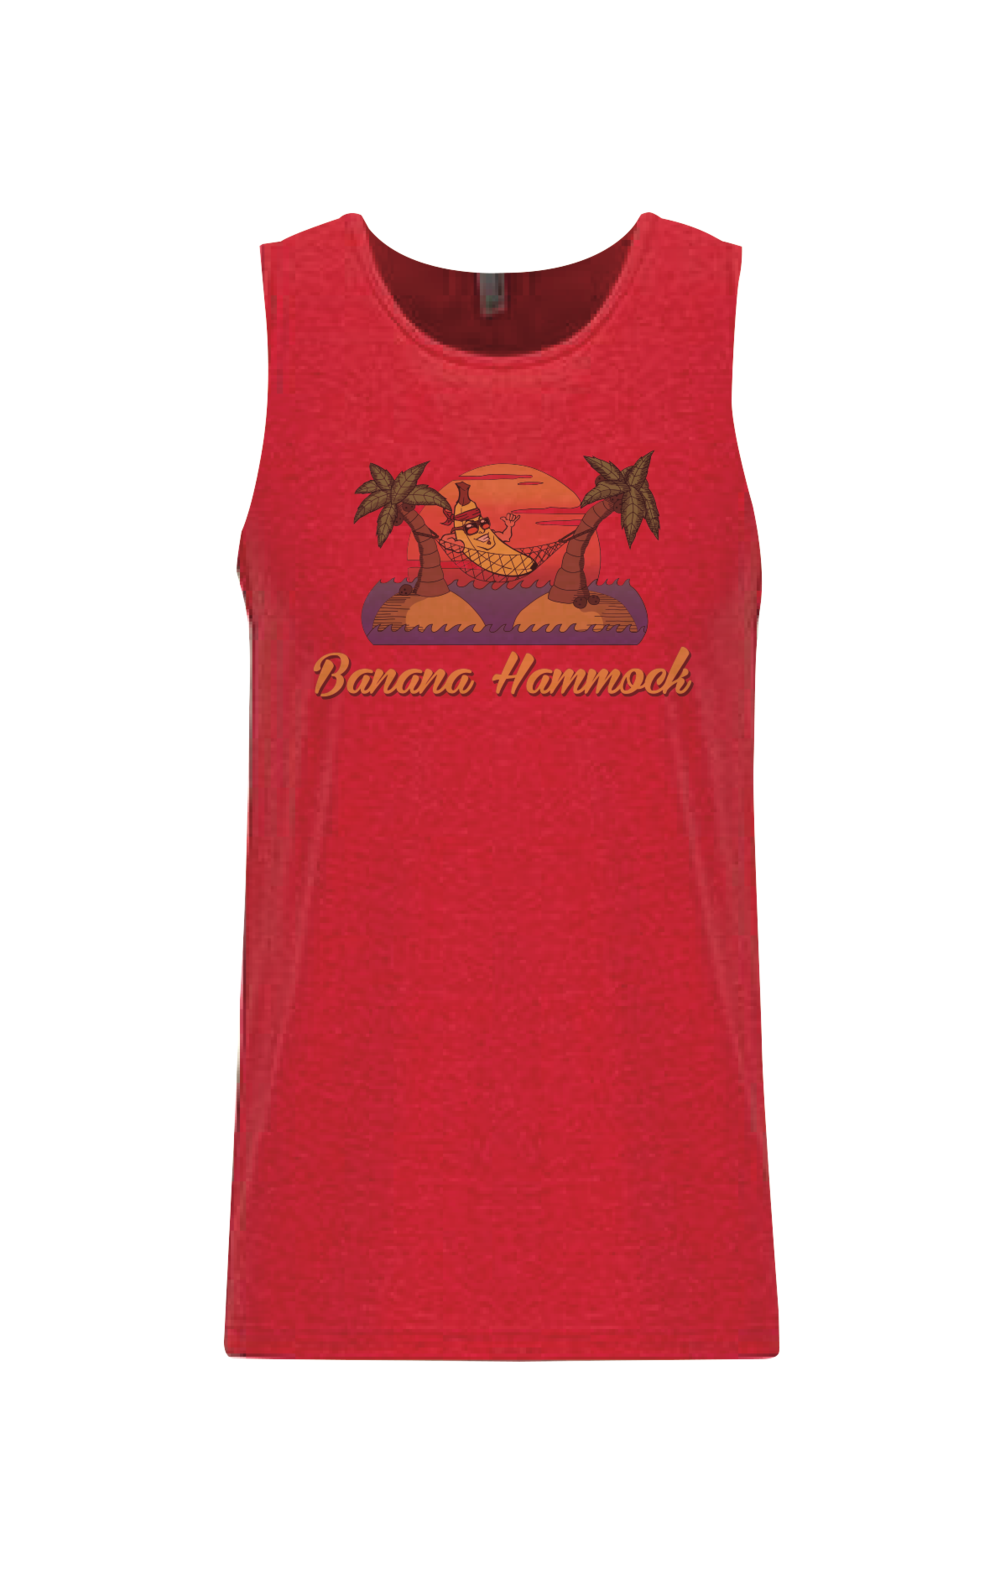 Medium image of banana hammock tank   mens